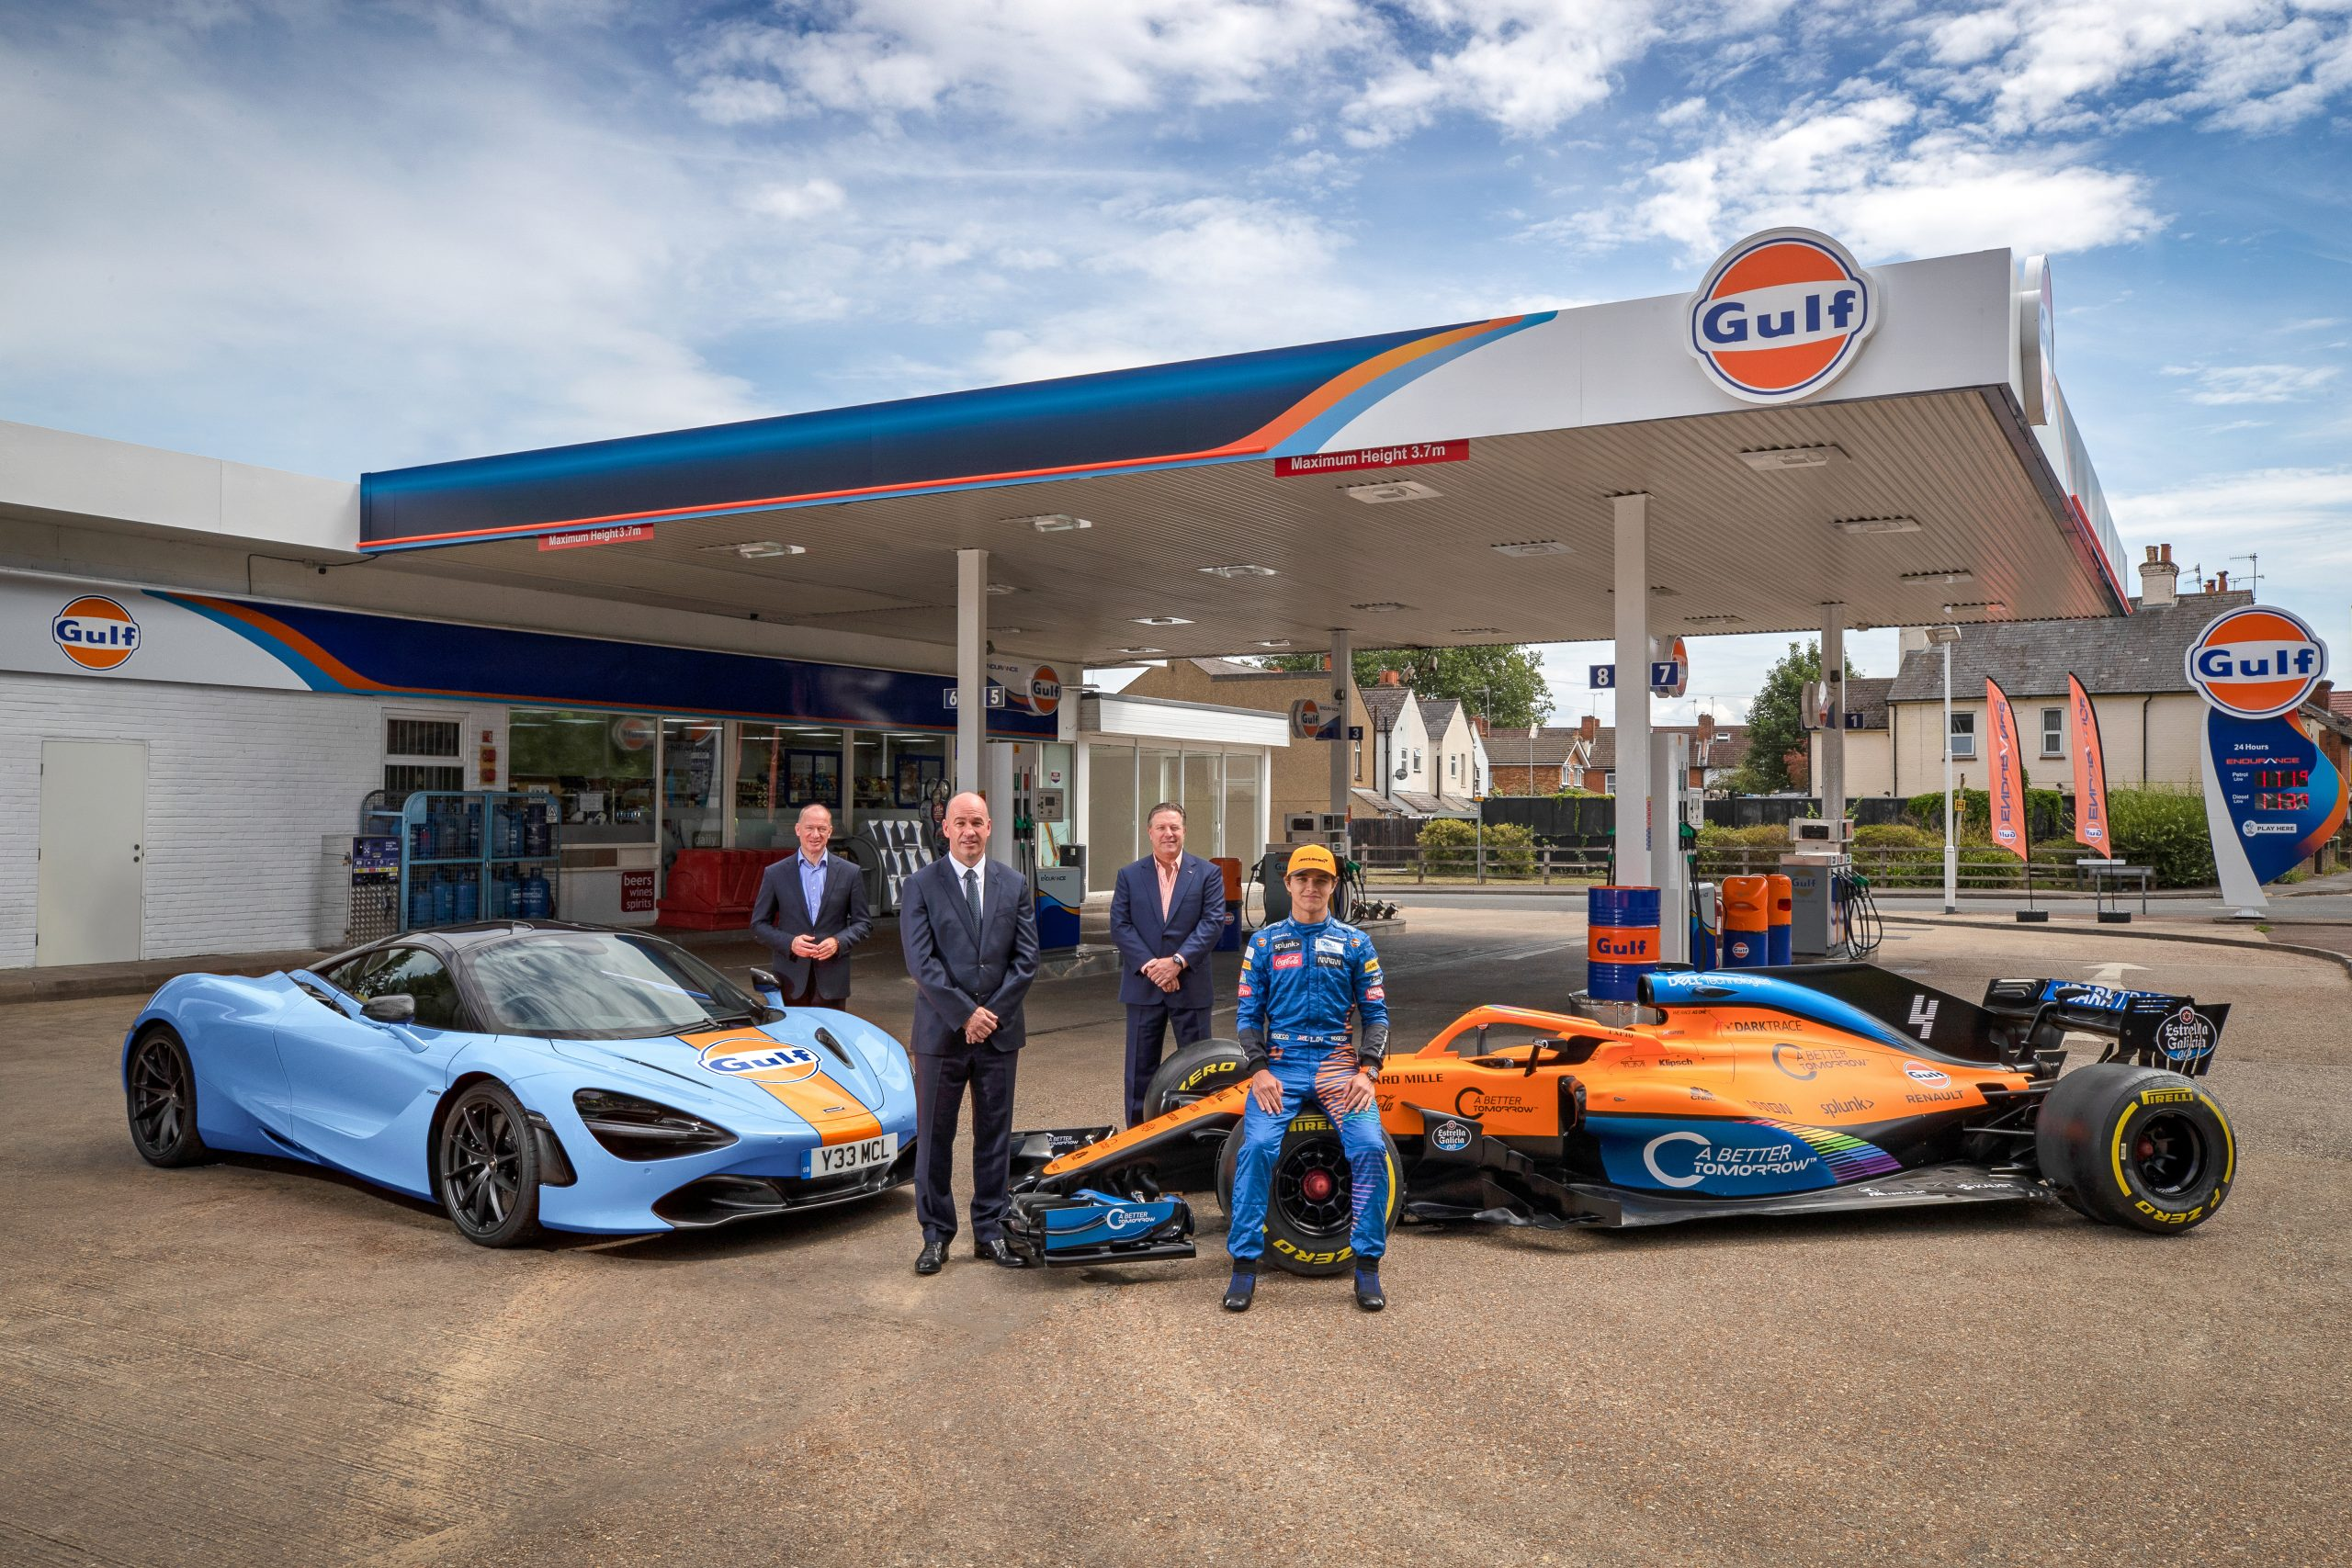 McLaren and Gulf Oil reunite for road and racing